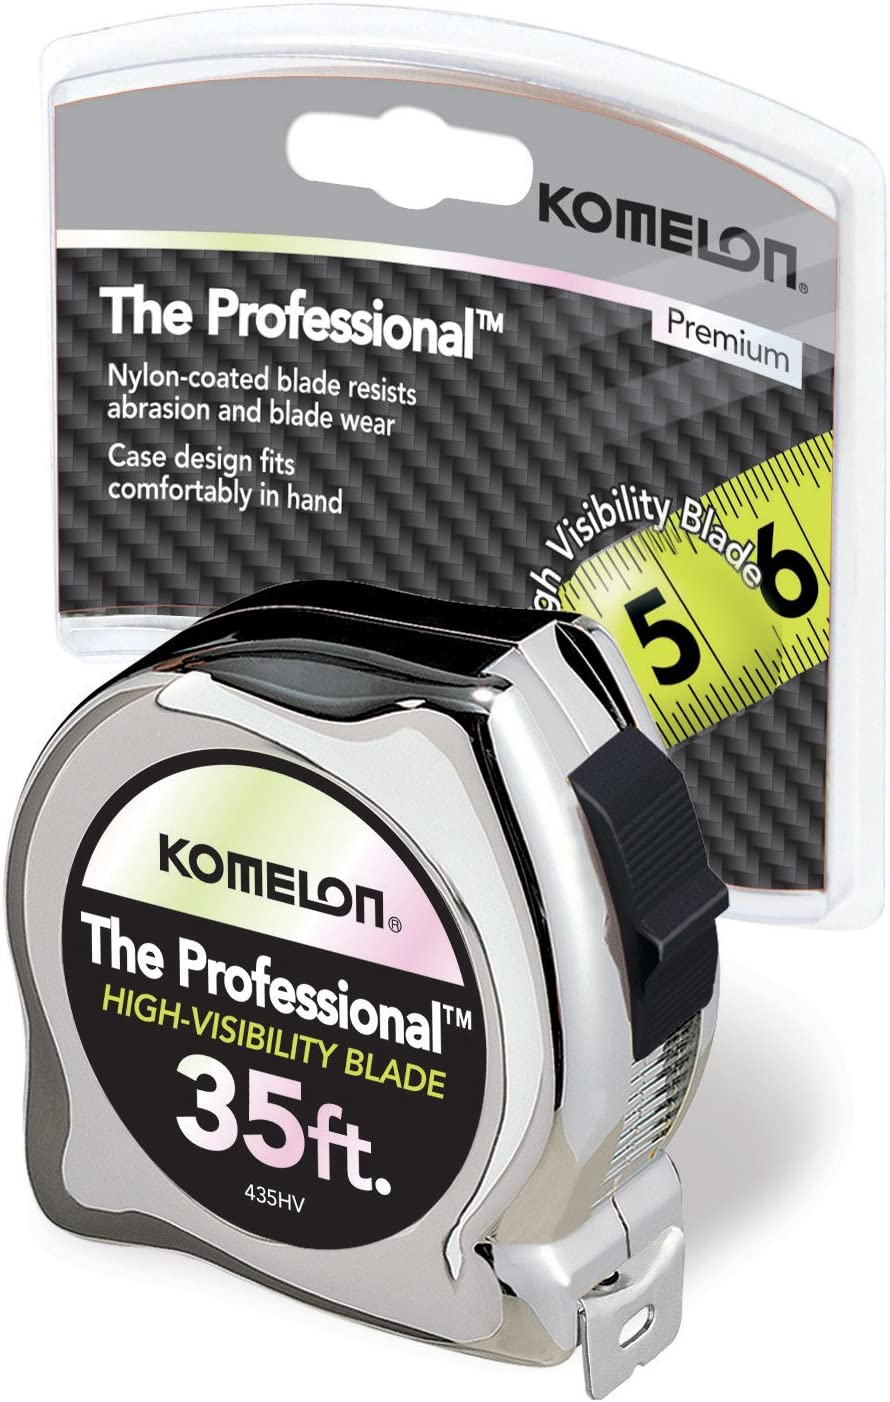 35-Feet by 1-Inch, Komelon 435HV High-Visibility Professional Tape Measure